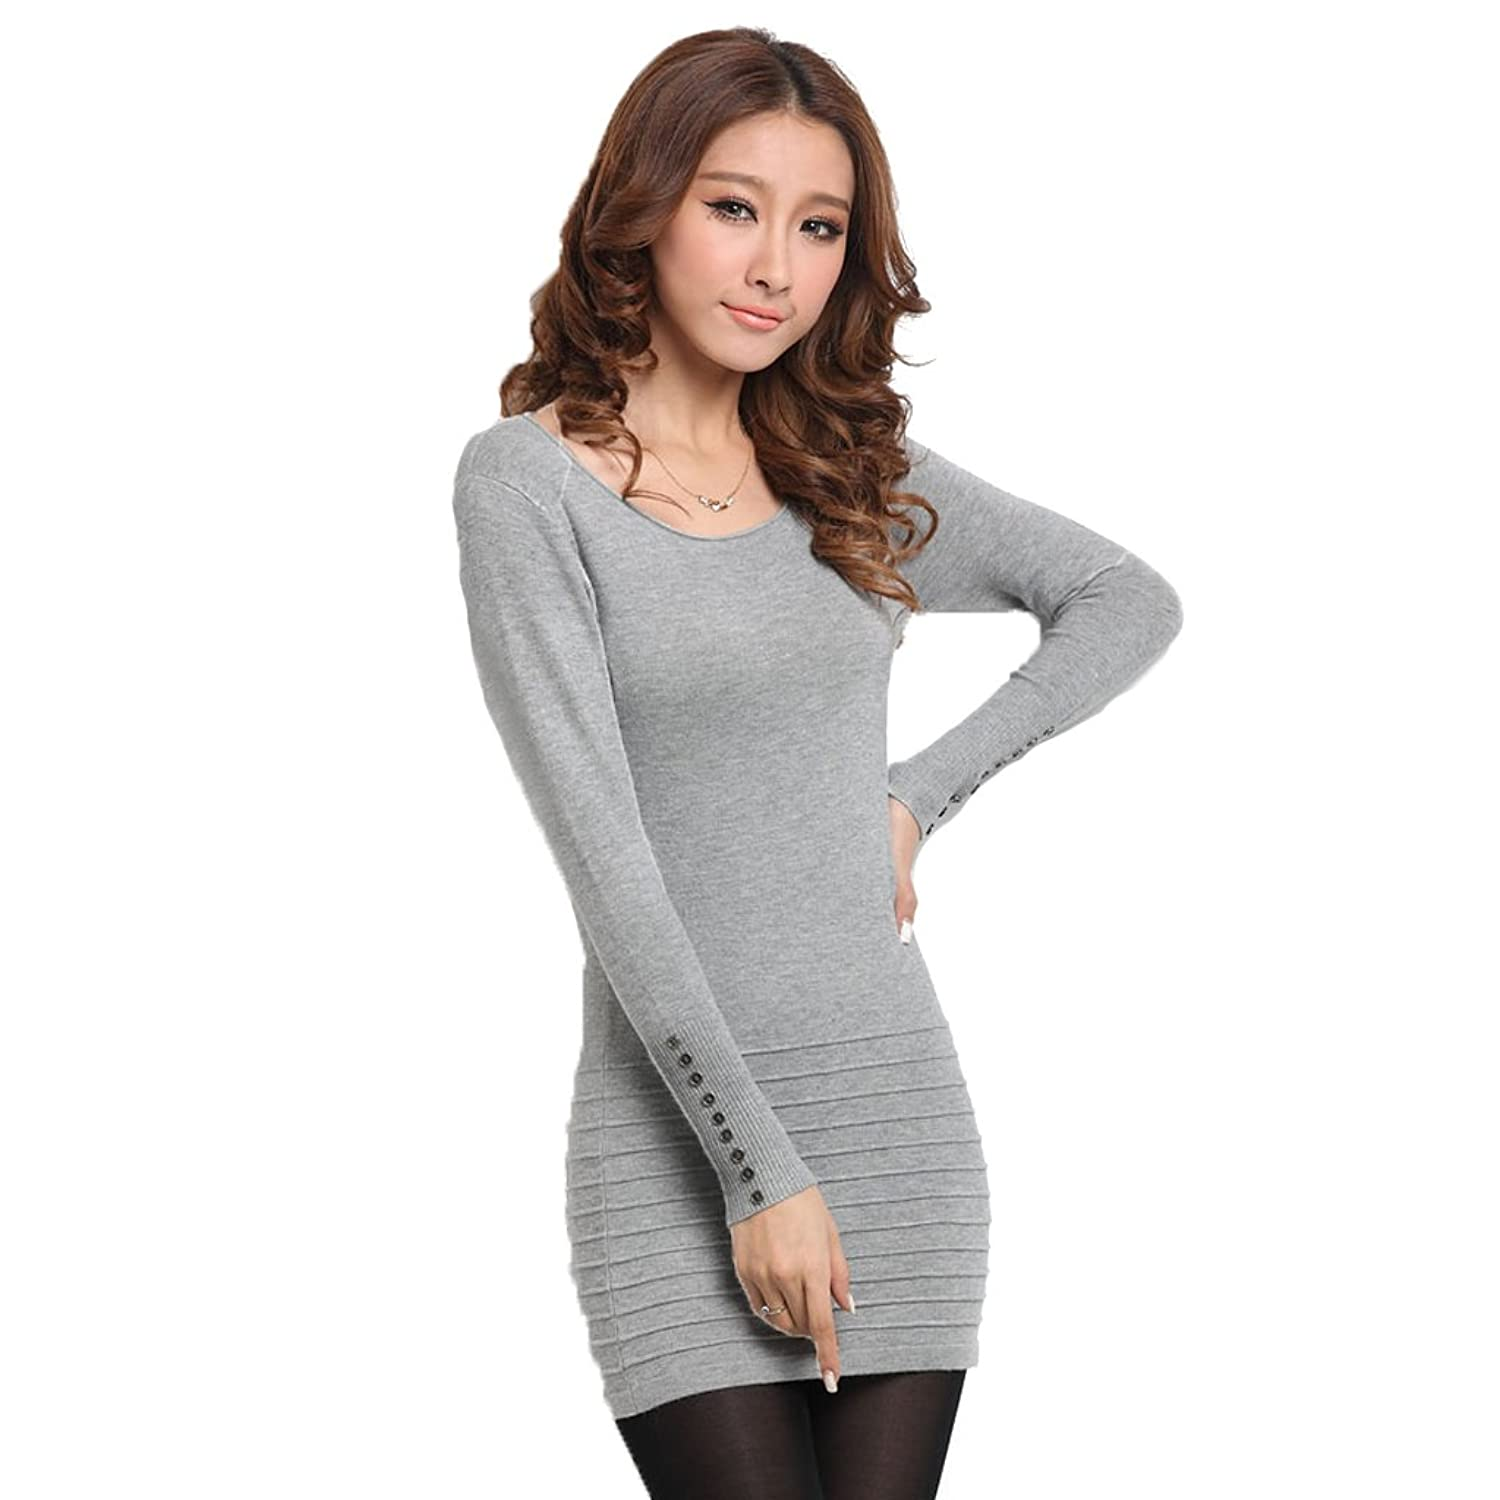 ITOPAI Women's Slim Round Neck Long Sleeve Pullover Sweater